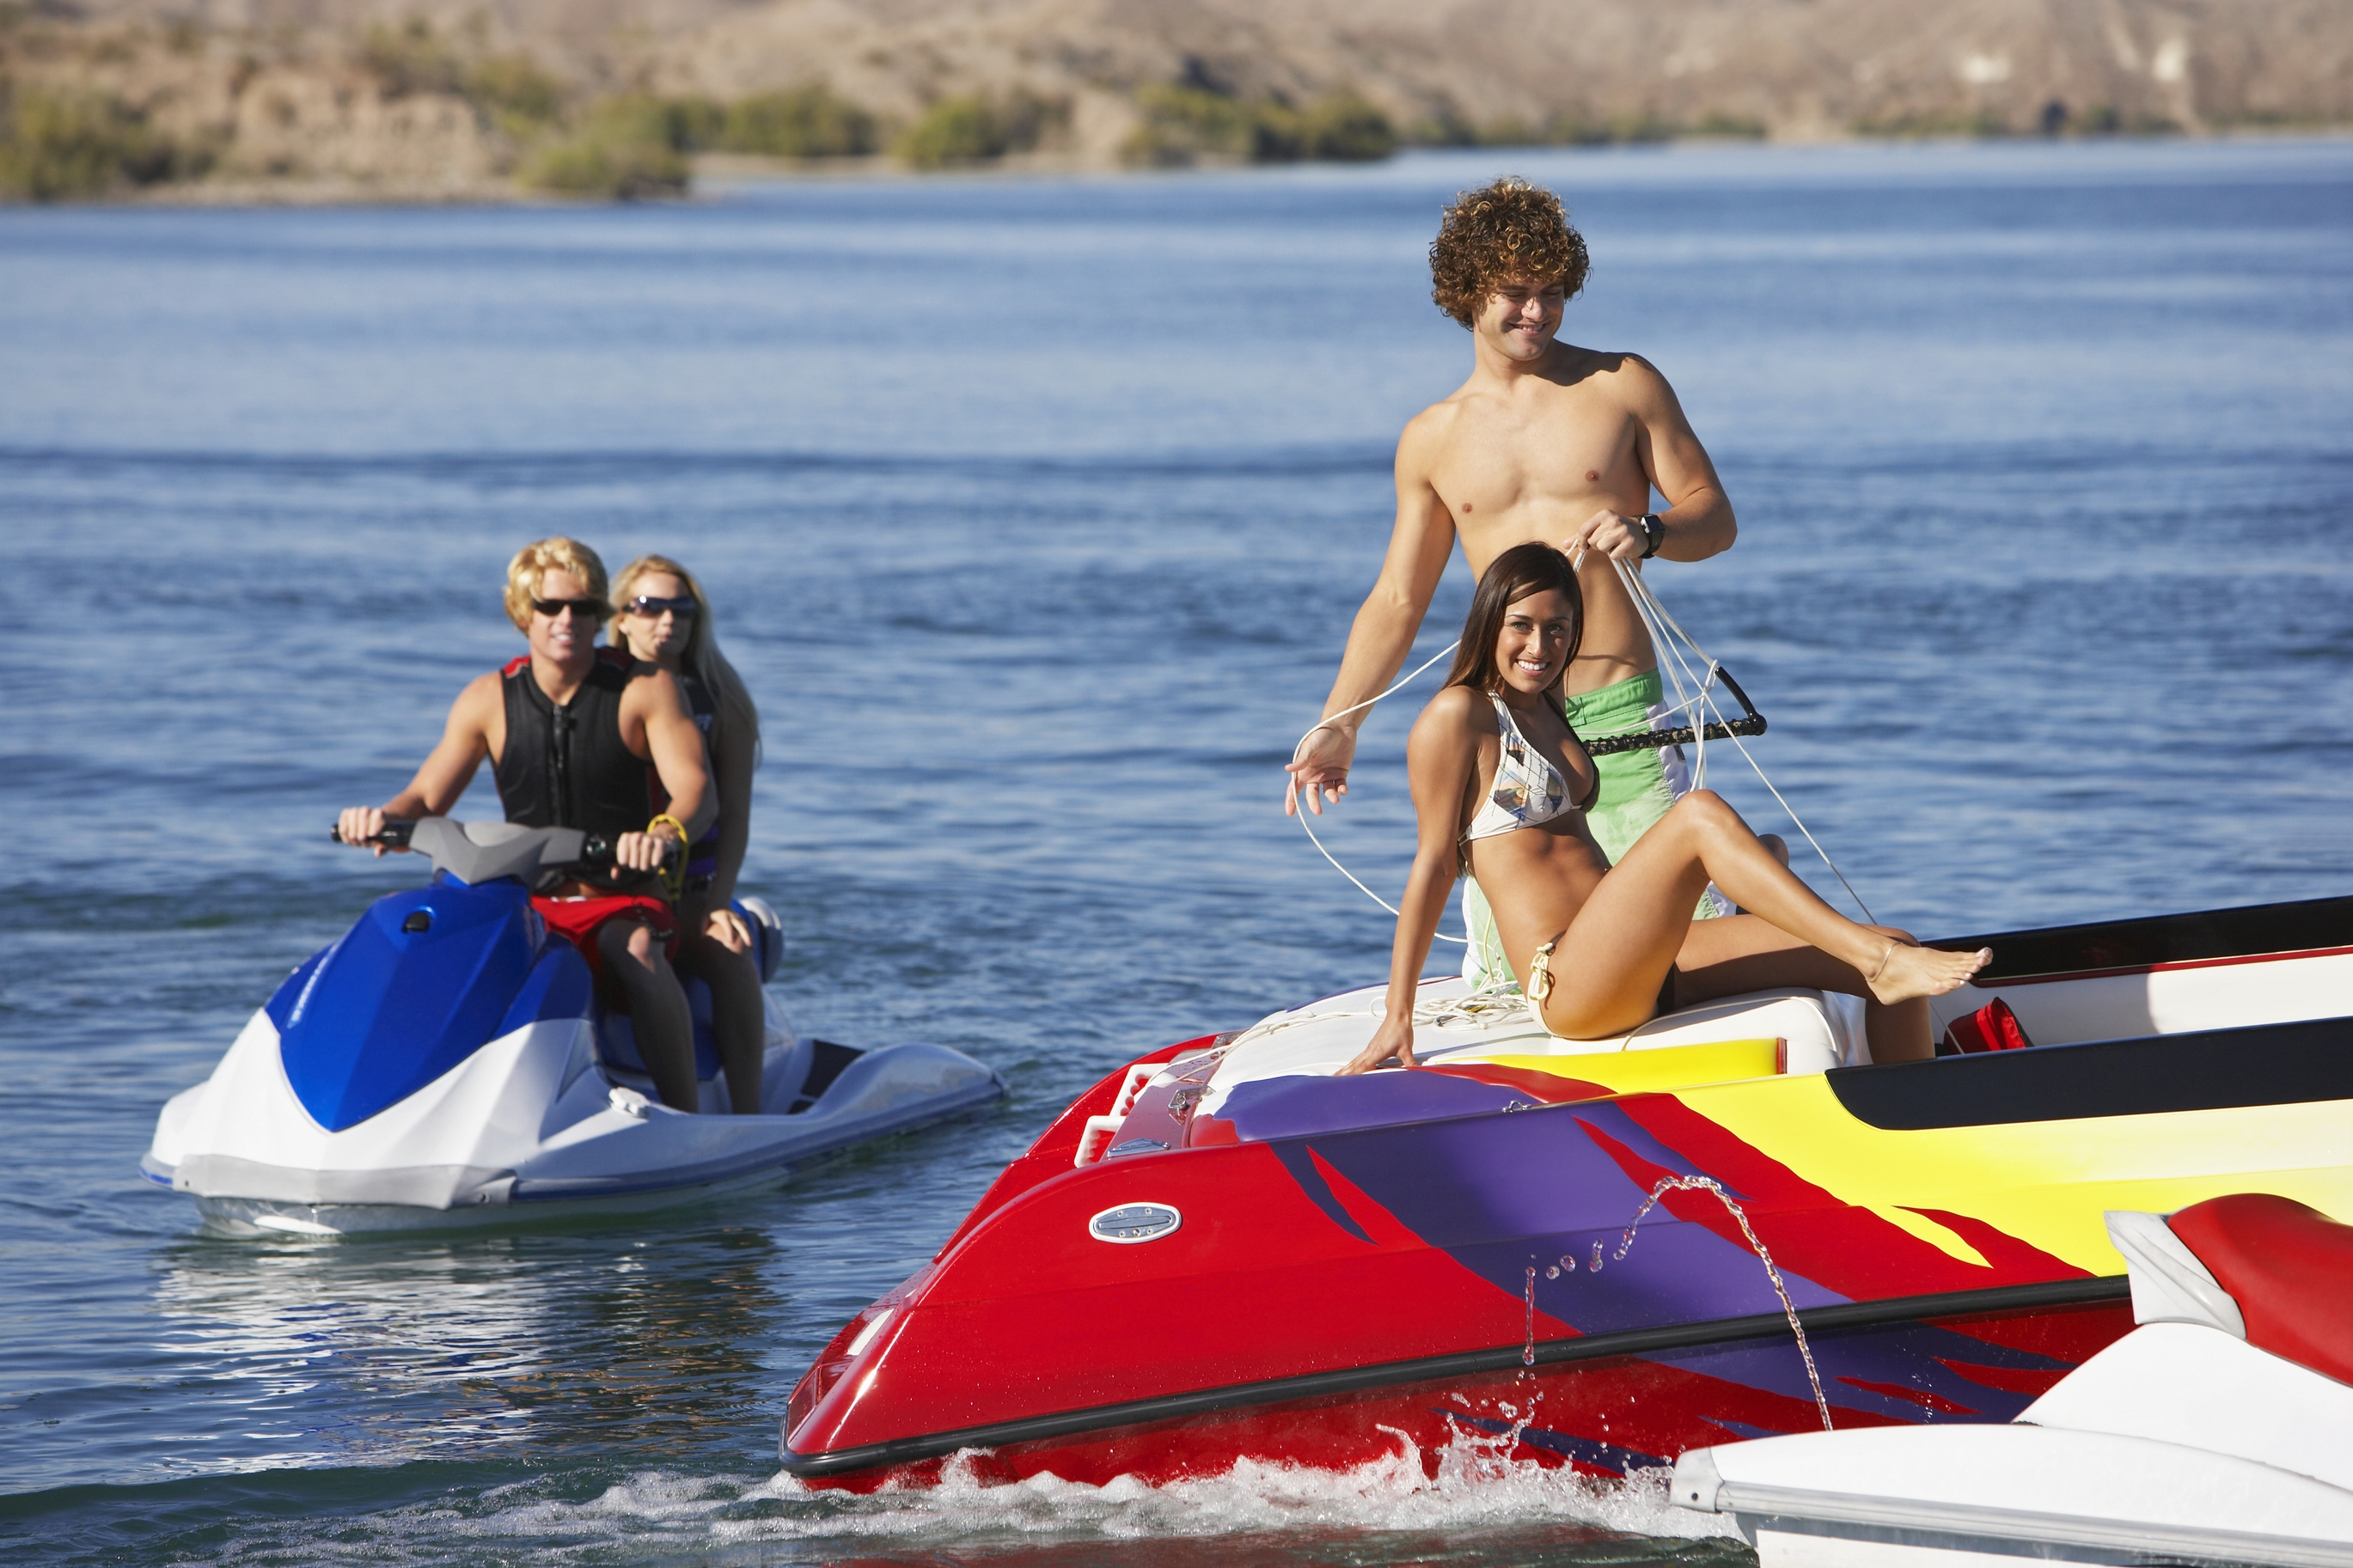 Every little thing You Ever Needed to Know About Boat Fenders